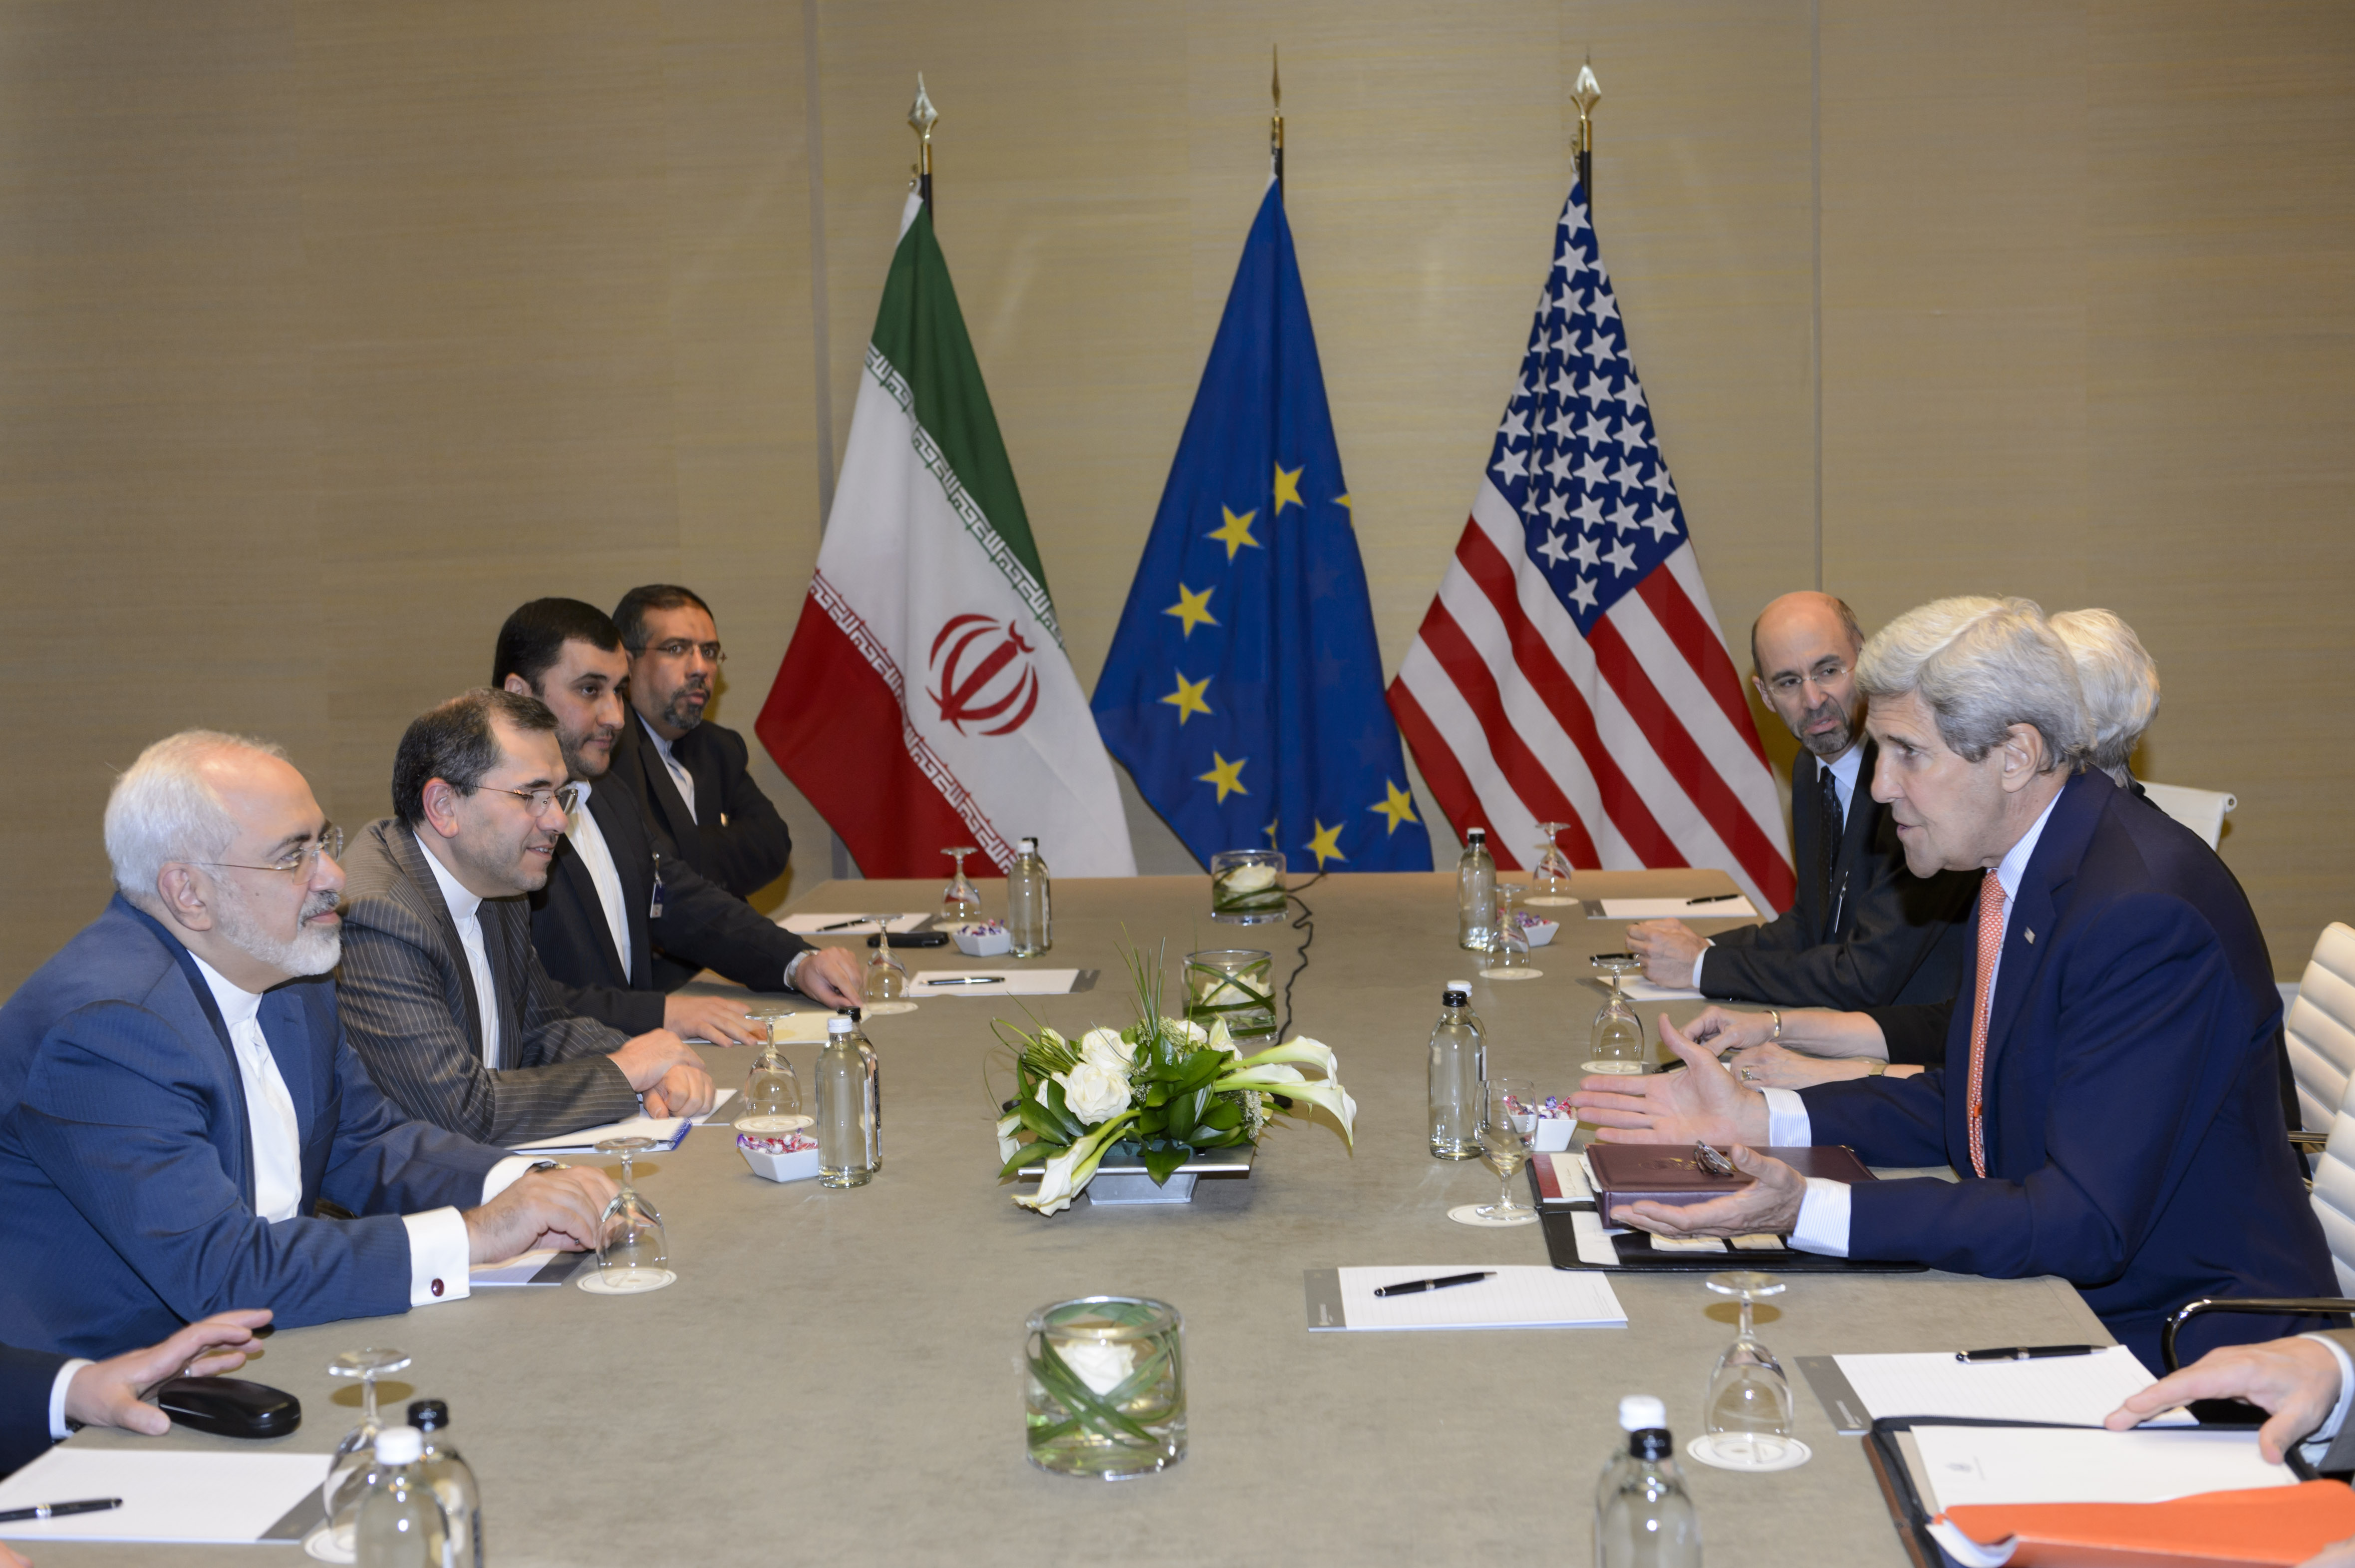 International Affairs - U.S. Secretary of State John Kerry, right, speaks with Iranian Foreign Minister Mohammad Javad Zarif, left, prior to a bilateral meeting for a new round of Nuclear Talks with Iran at the Intercontinental Hotel, in Geneva, Switzerland, Saturday, May 30, 2015. A month out from a nuclear deal deadline, the top U.S. and Iranian diplomats gathered in Geneva Saturday in an effort to bridge differences over how quickly to ease economic sanctions on Tehran and how significantly the Iranians must open up military facilities to international inspections. (Laurent Gillieron/Keystone via AP)